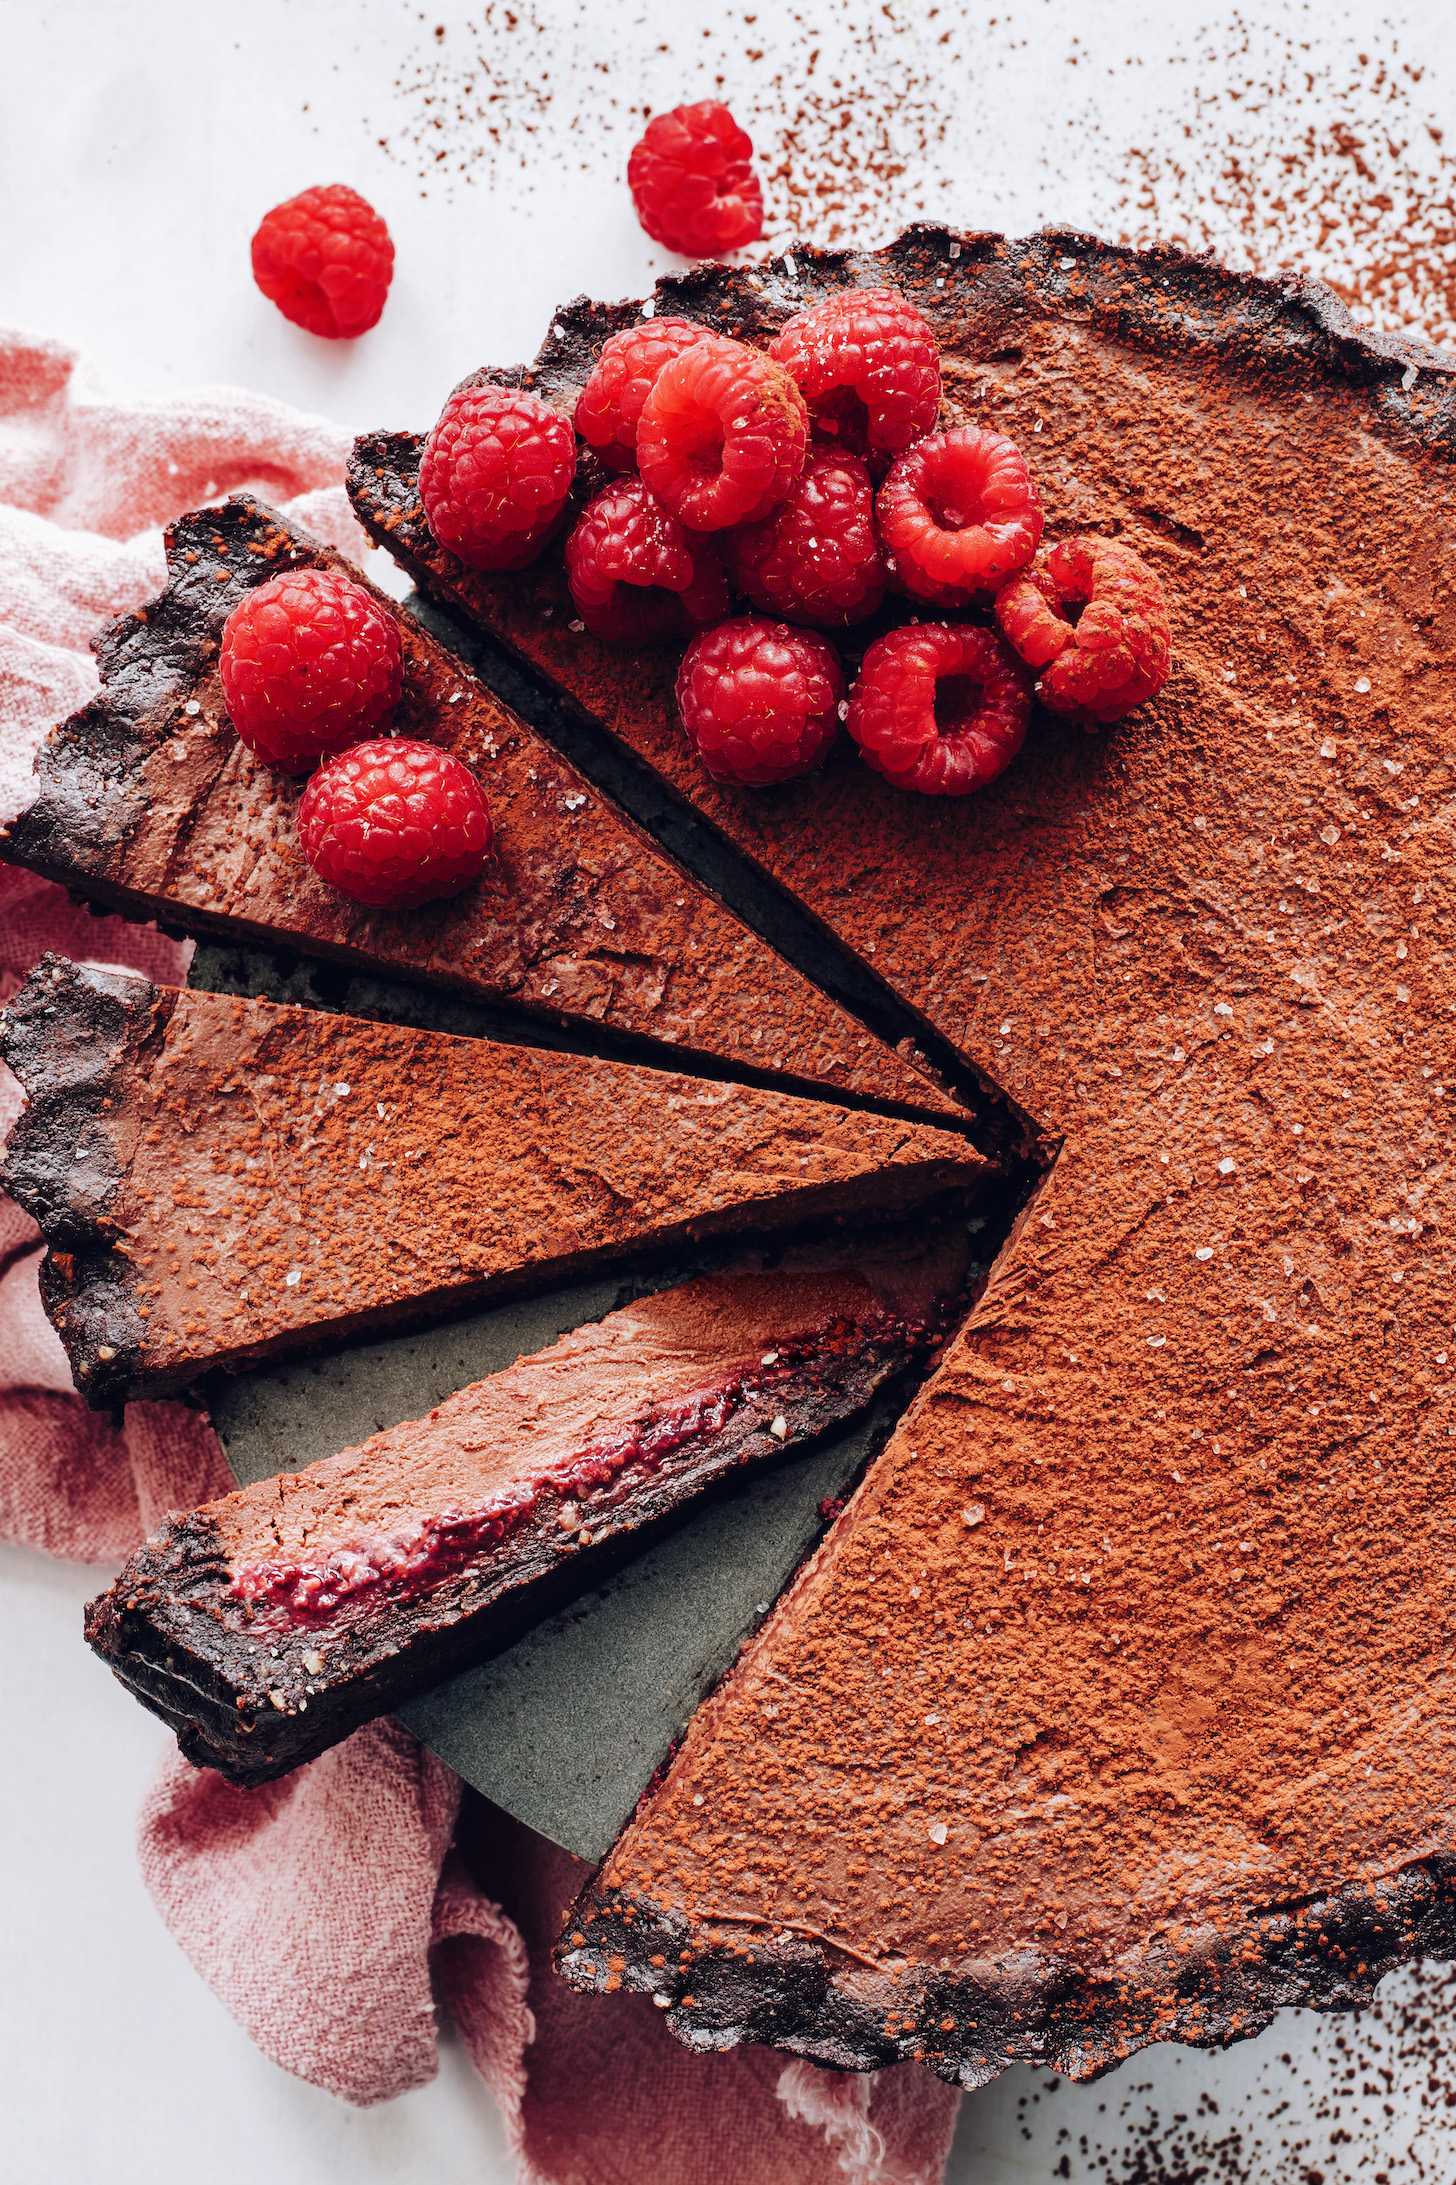 Vegan chocolate ganache tart topped with fresh raspberries and a dusting of cocoa powder